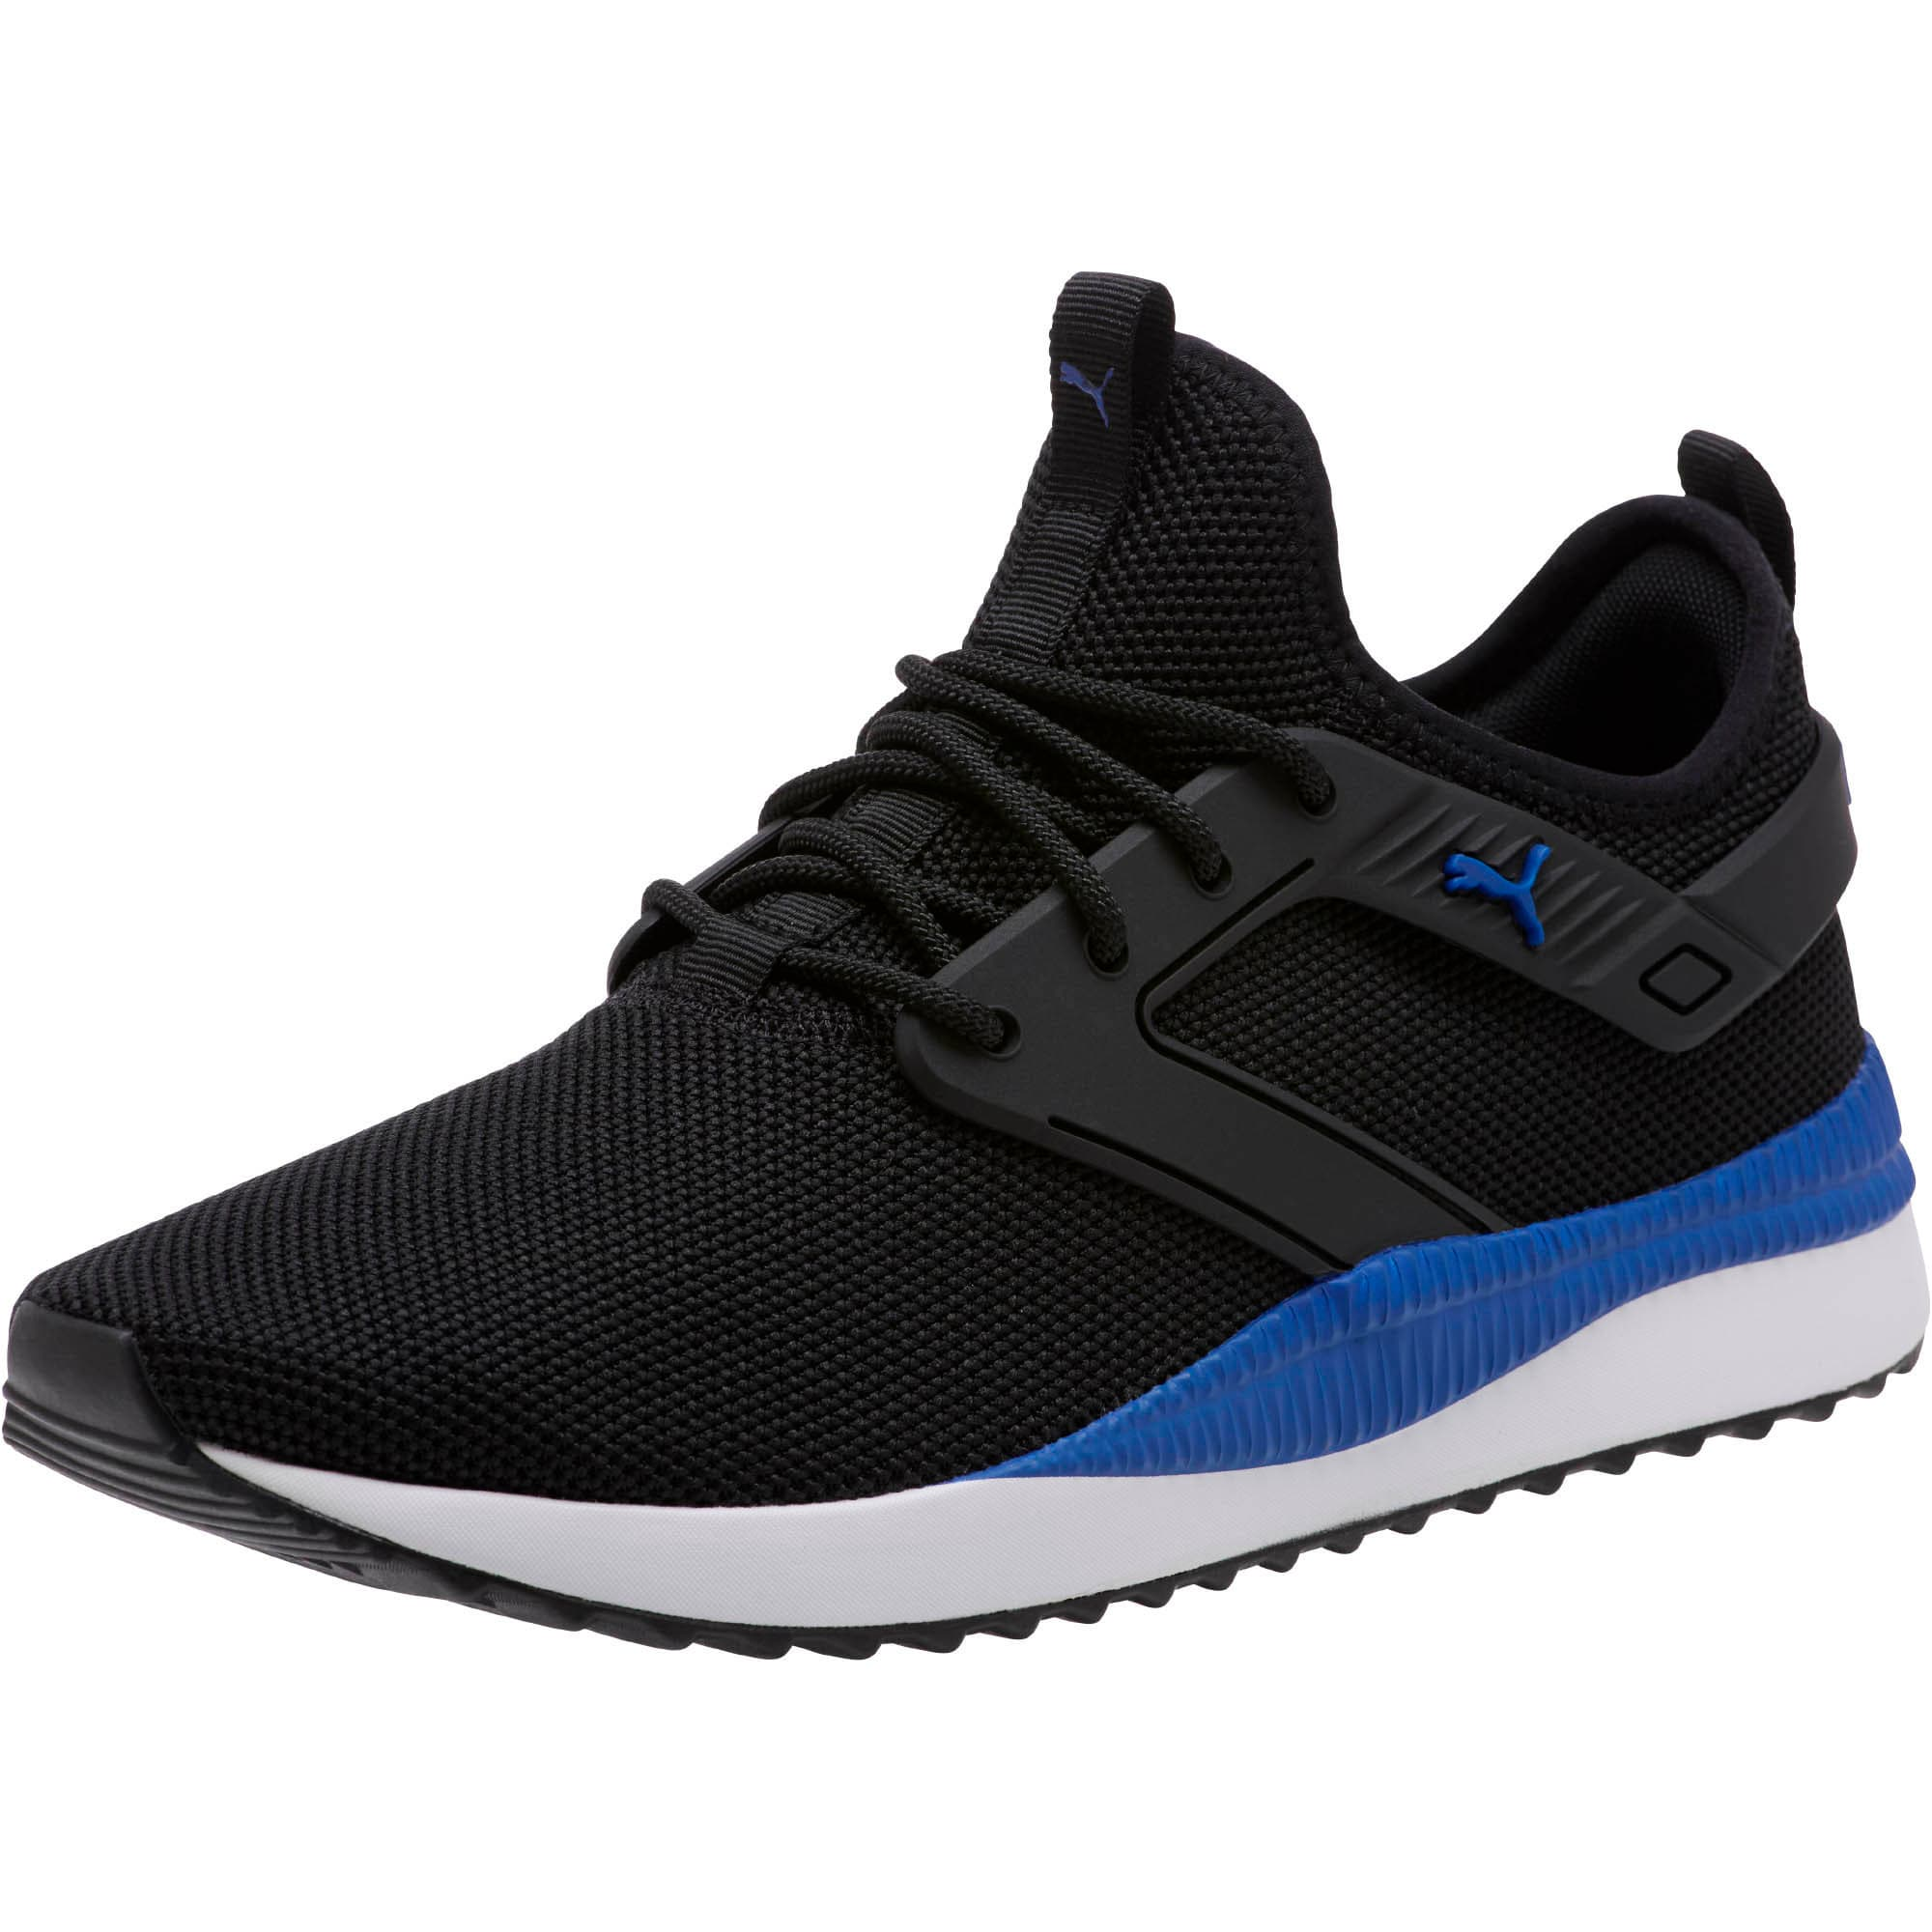 Thumbnail 1 of Pacer Next Excel Shoes, Puma Black-Surf The Web, medium-IND